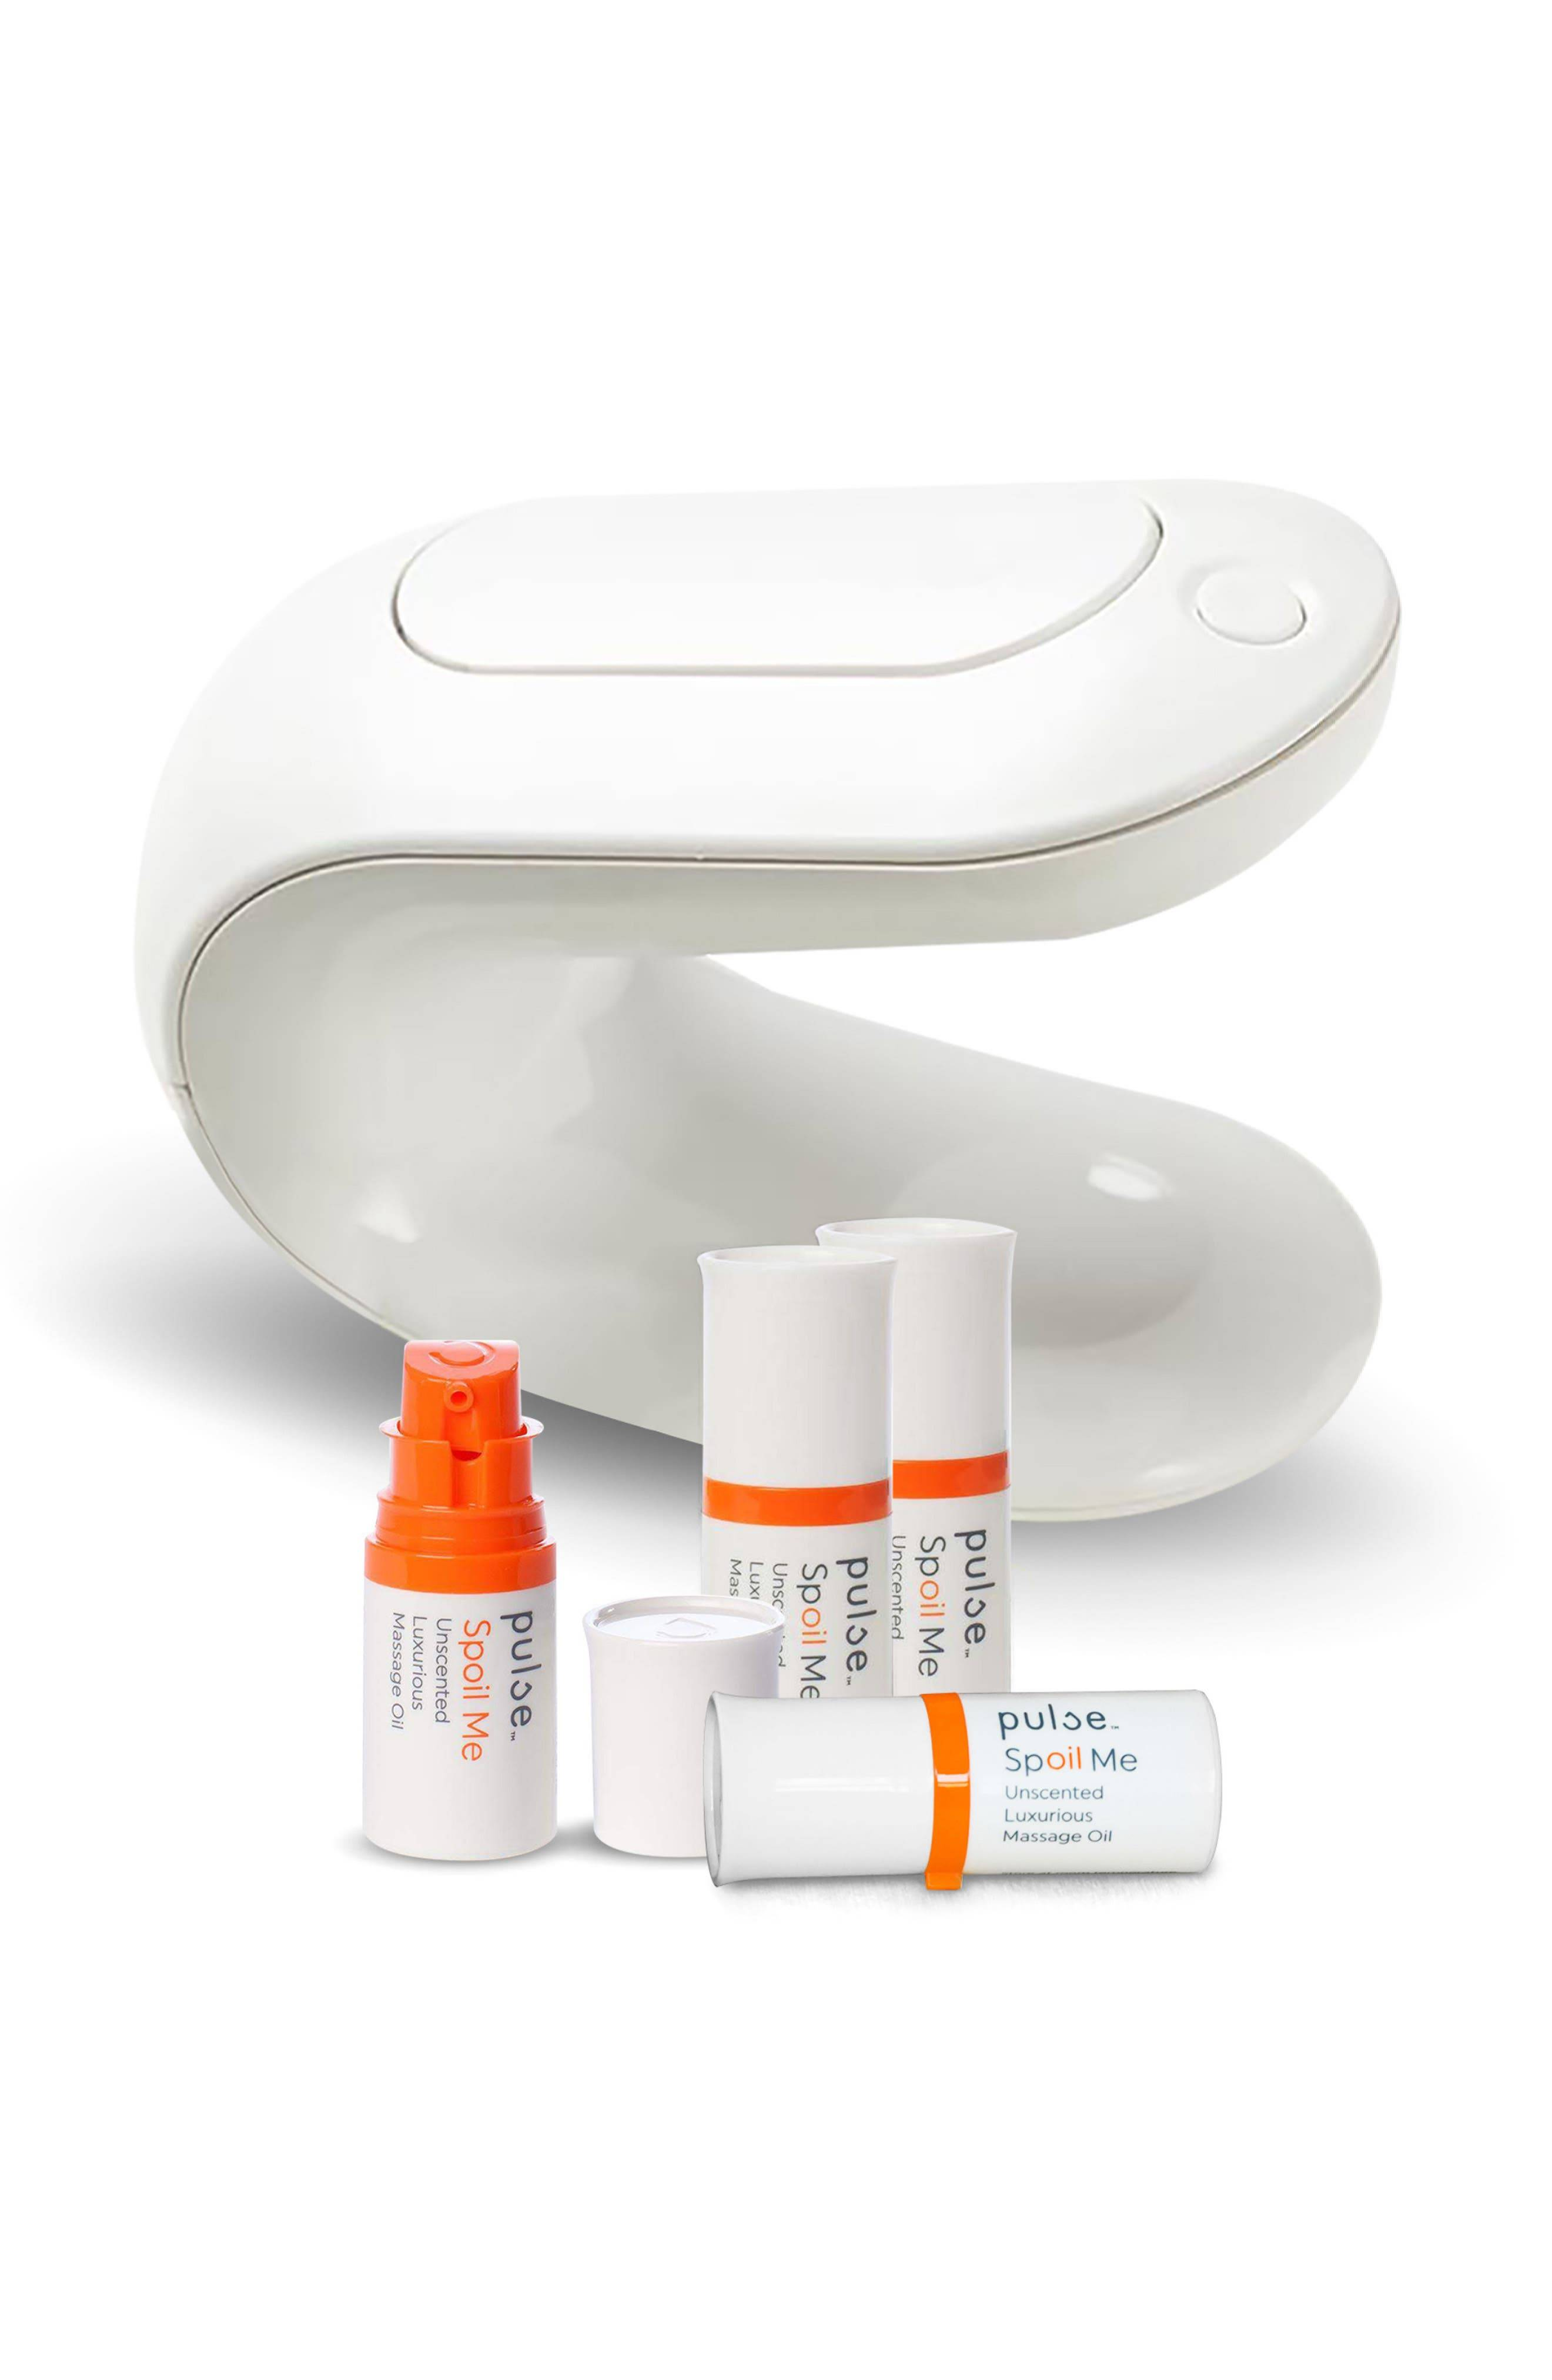 Pulse Personal Lube And Massage Oil Warming Dispenser